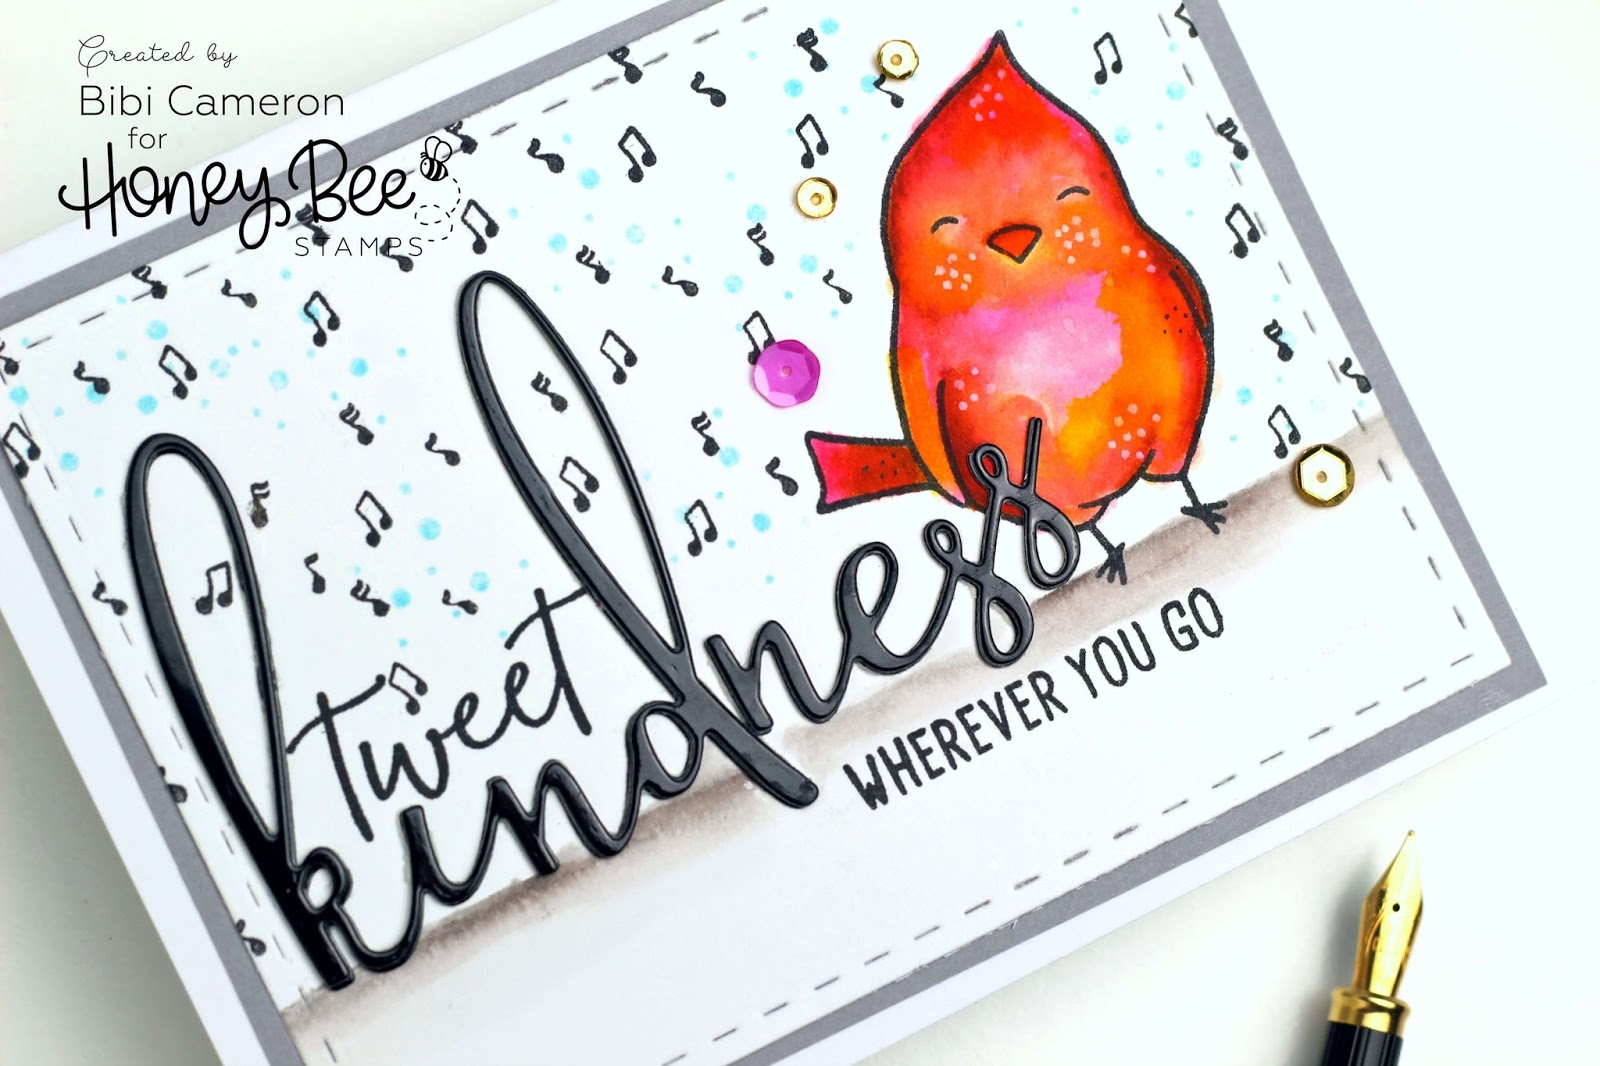 World Kindness Day celebration with a Promo by Honey Bee Stamp